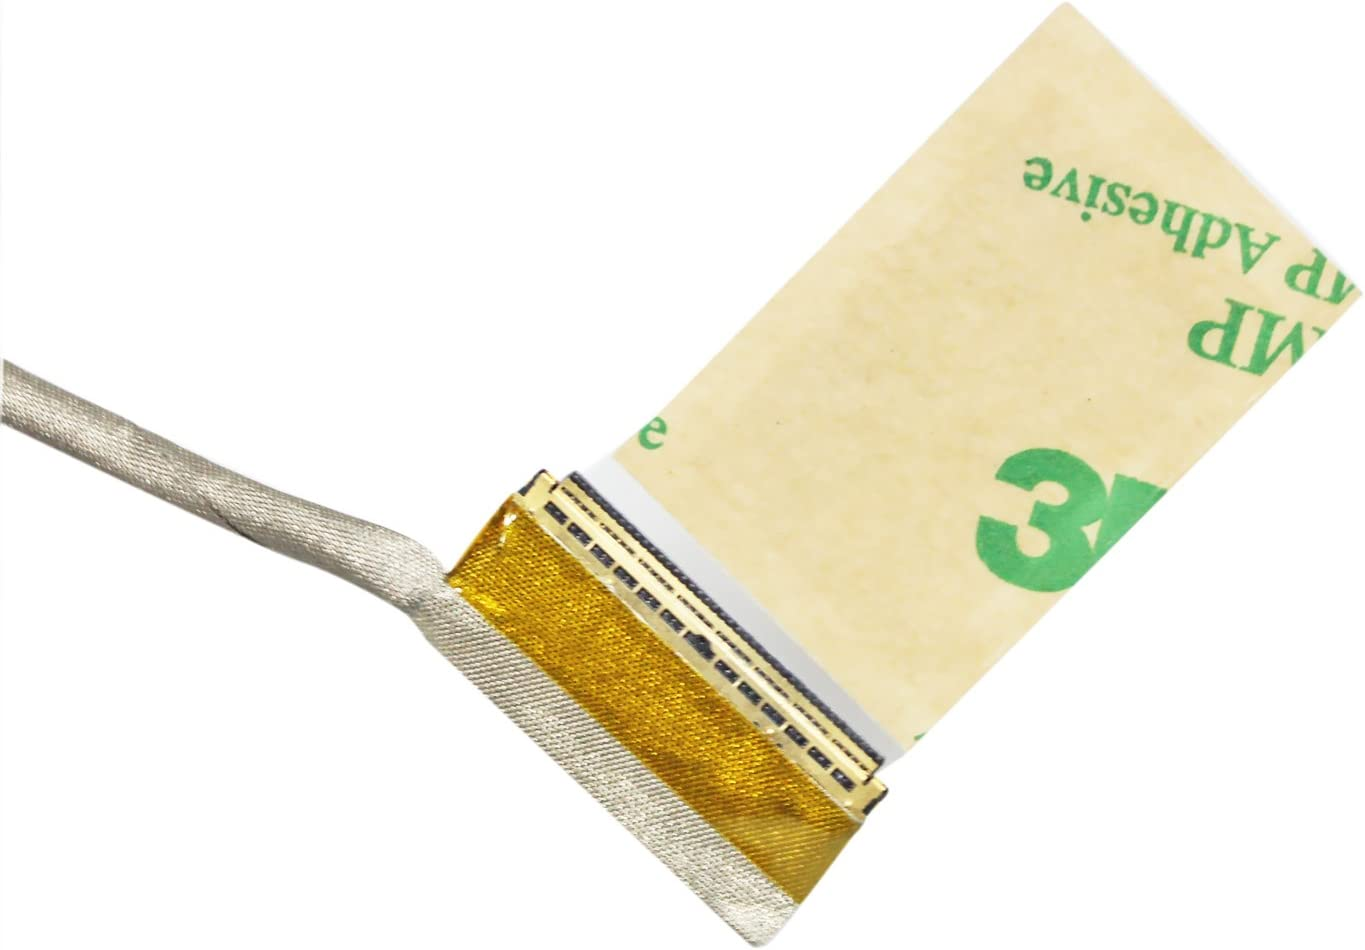 Zahara LCD LED Video Flex Cable Replacement for HP Envy 15-U270NZ 15-U102NK 15-U410NR 15-U011DX 15-U483CL 15-U001XX 15-U493CL 15-U111DX